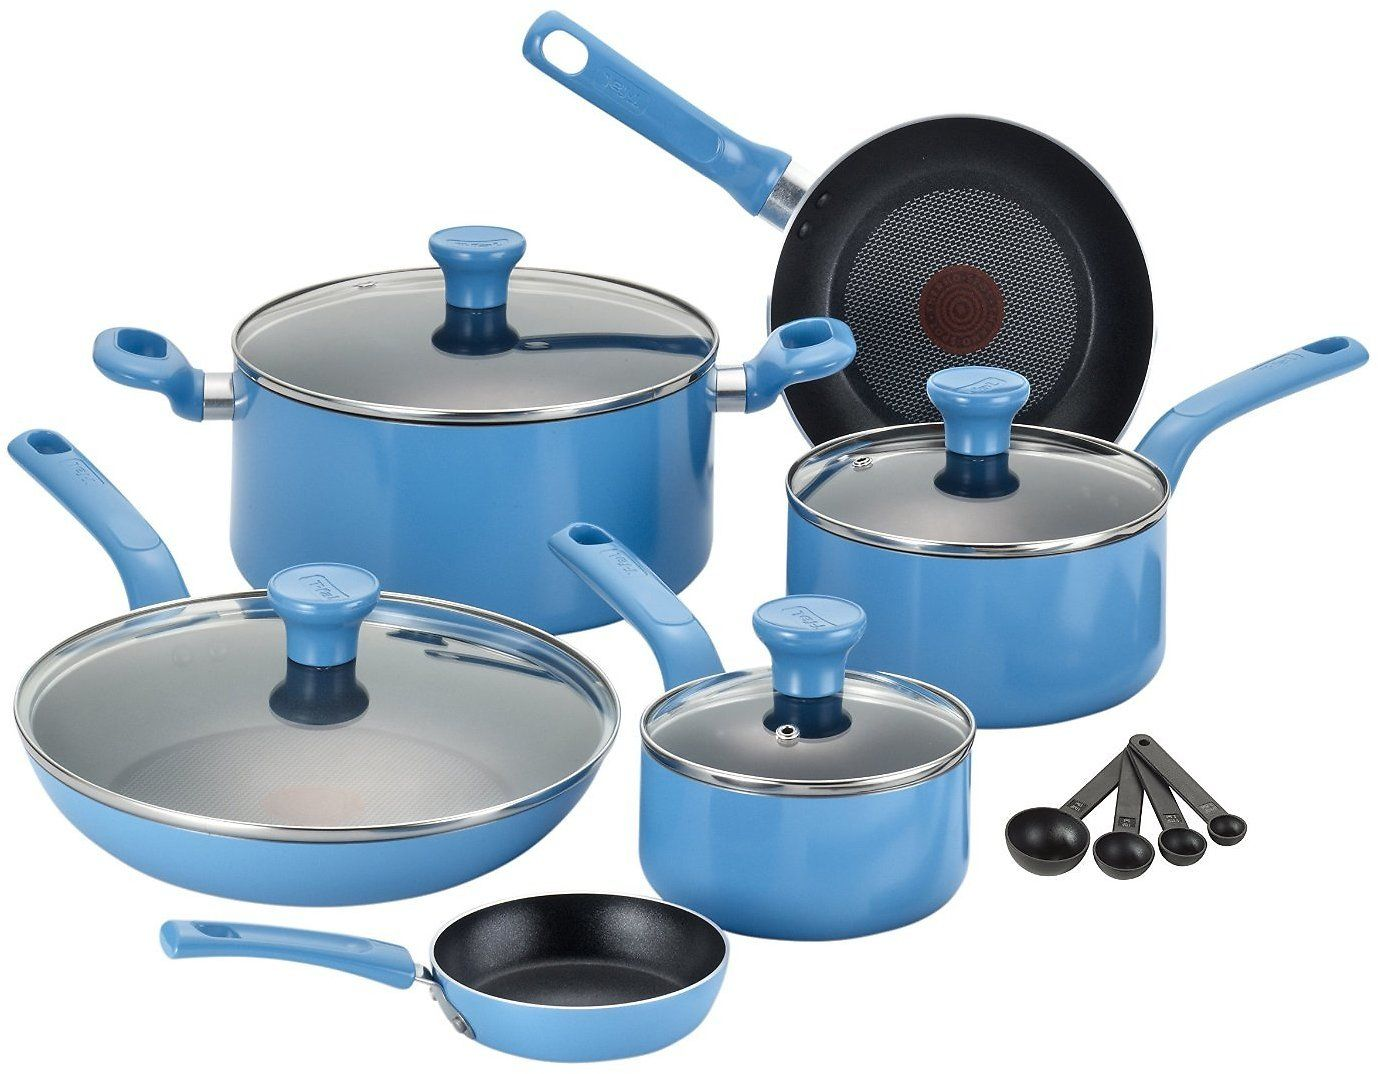 14-Piece T-fal Nonstick Thermo-Spot Cookware Set (Blue)   Deal On ...